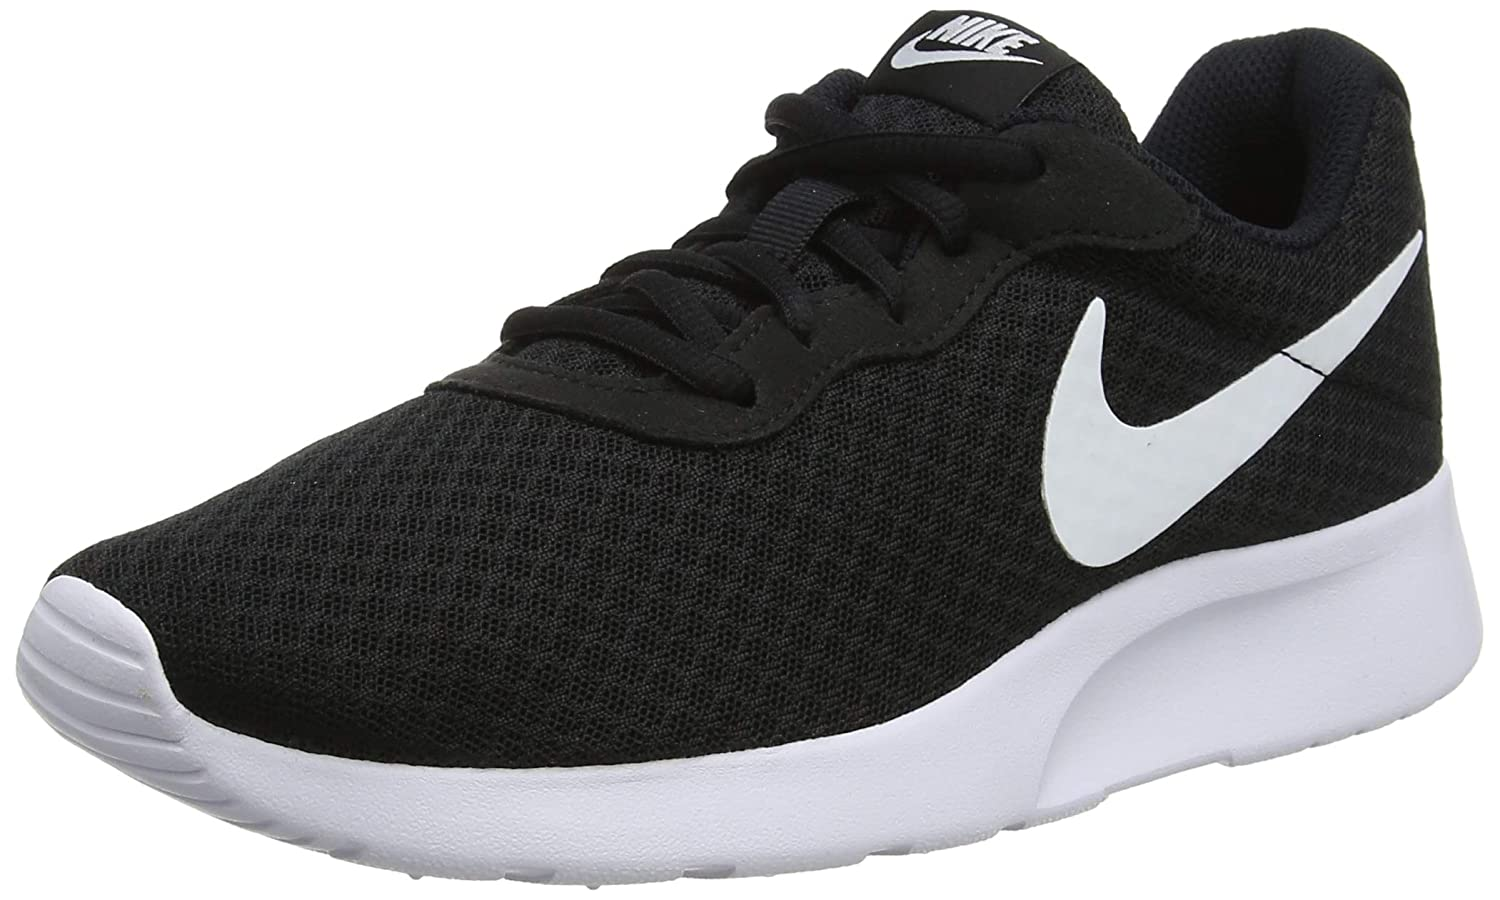 1c9f251818f Amazon.com  NIKE Women s Tanjun Running Shoes  Nike  Shoes